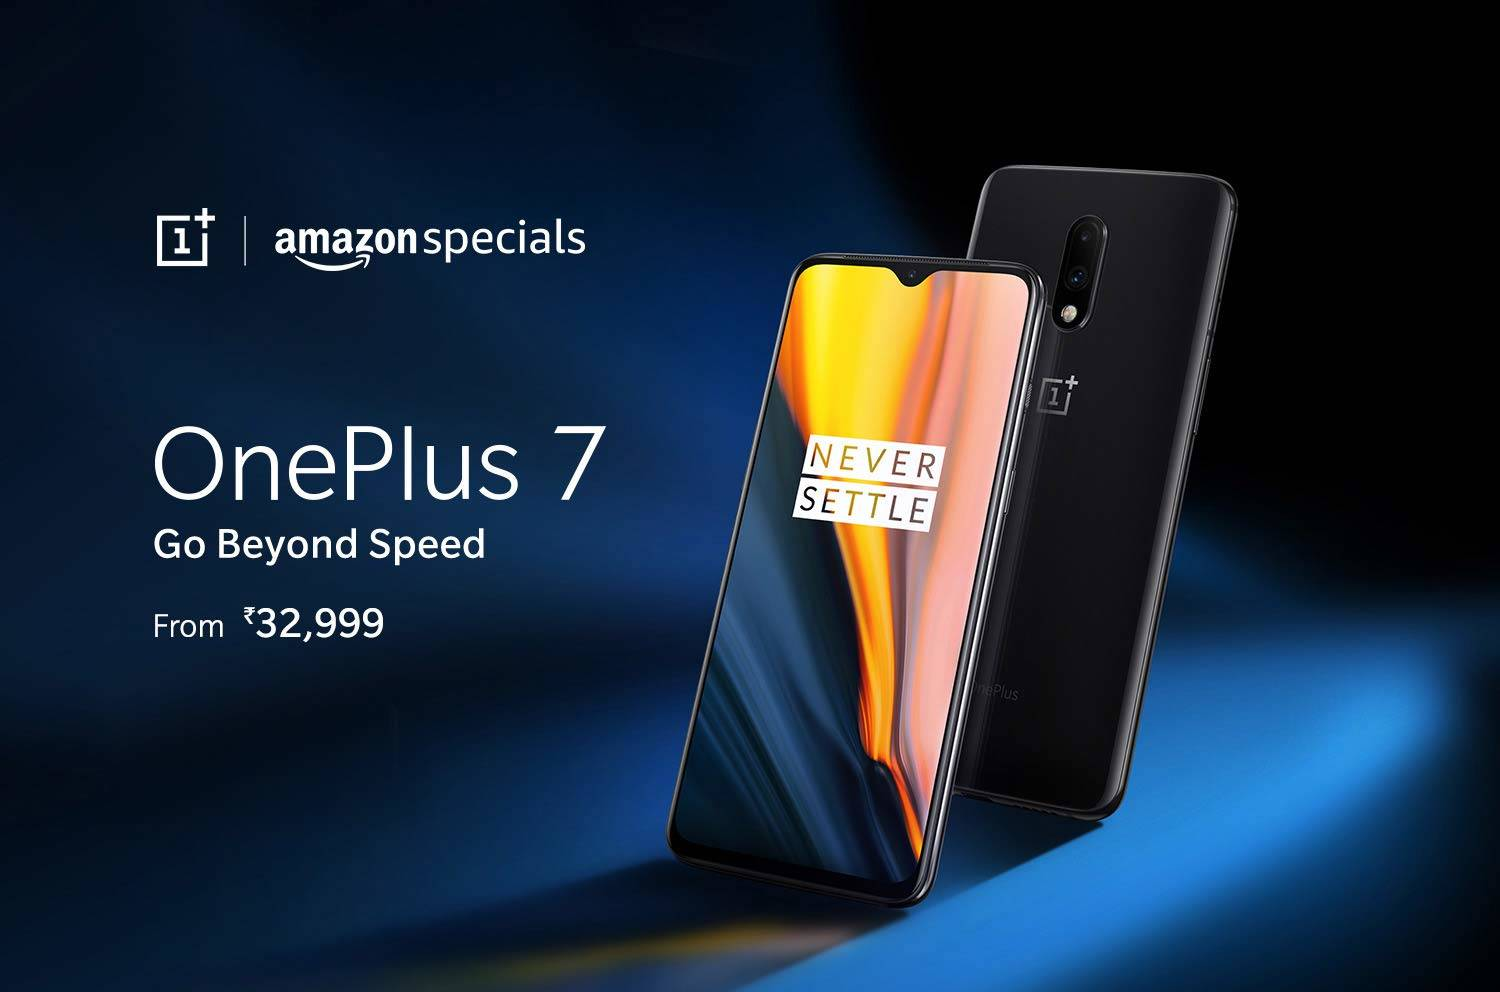 Much awaited OnePlus 7 sale is here!